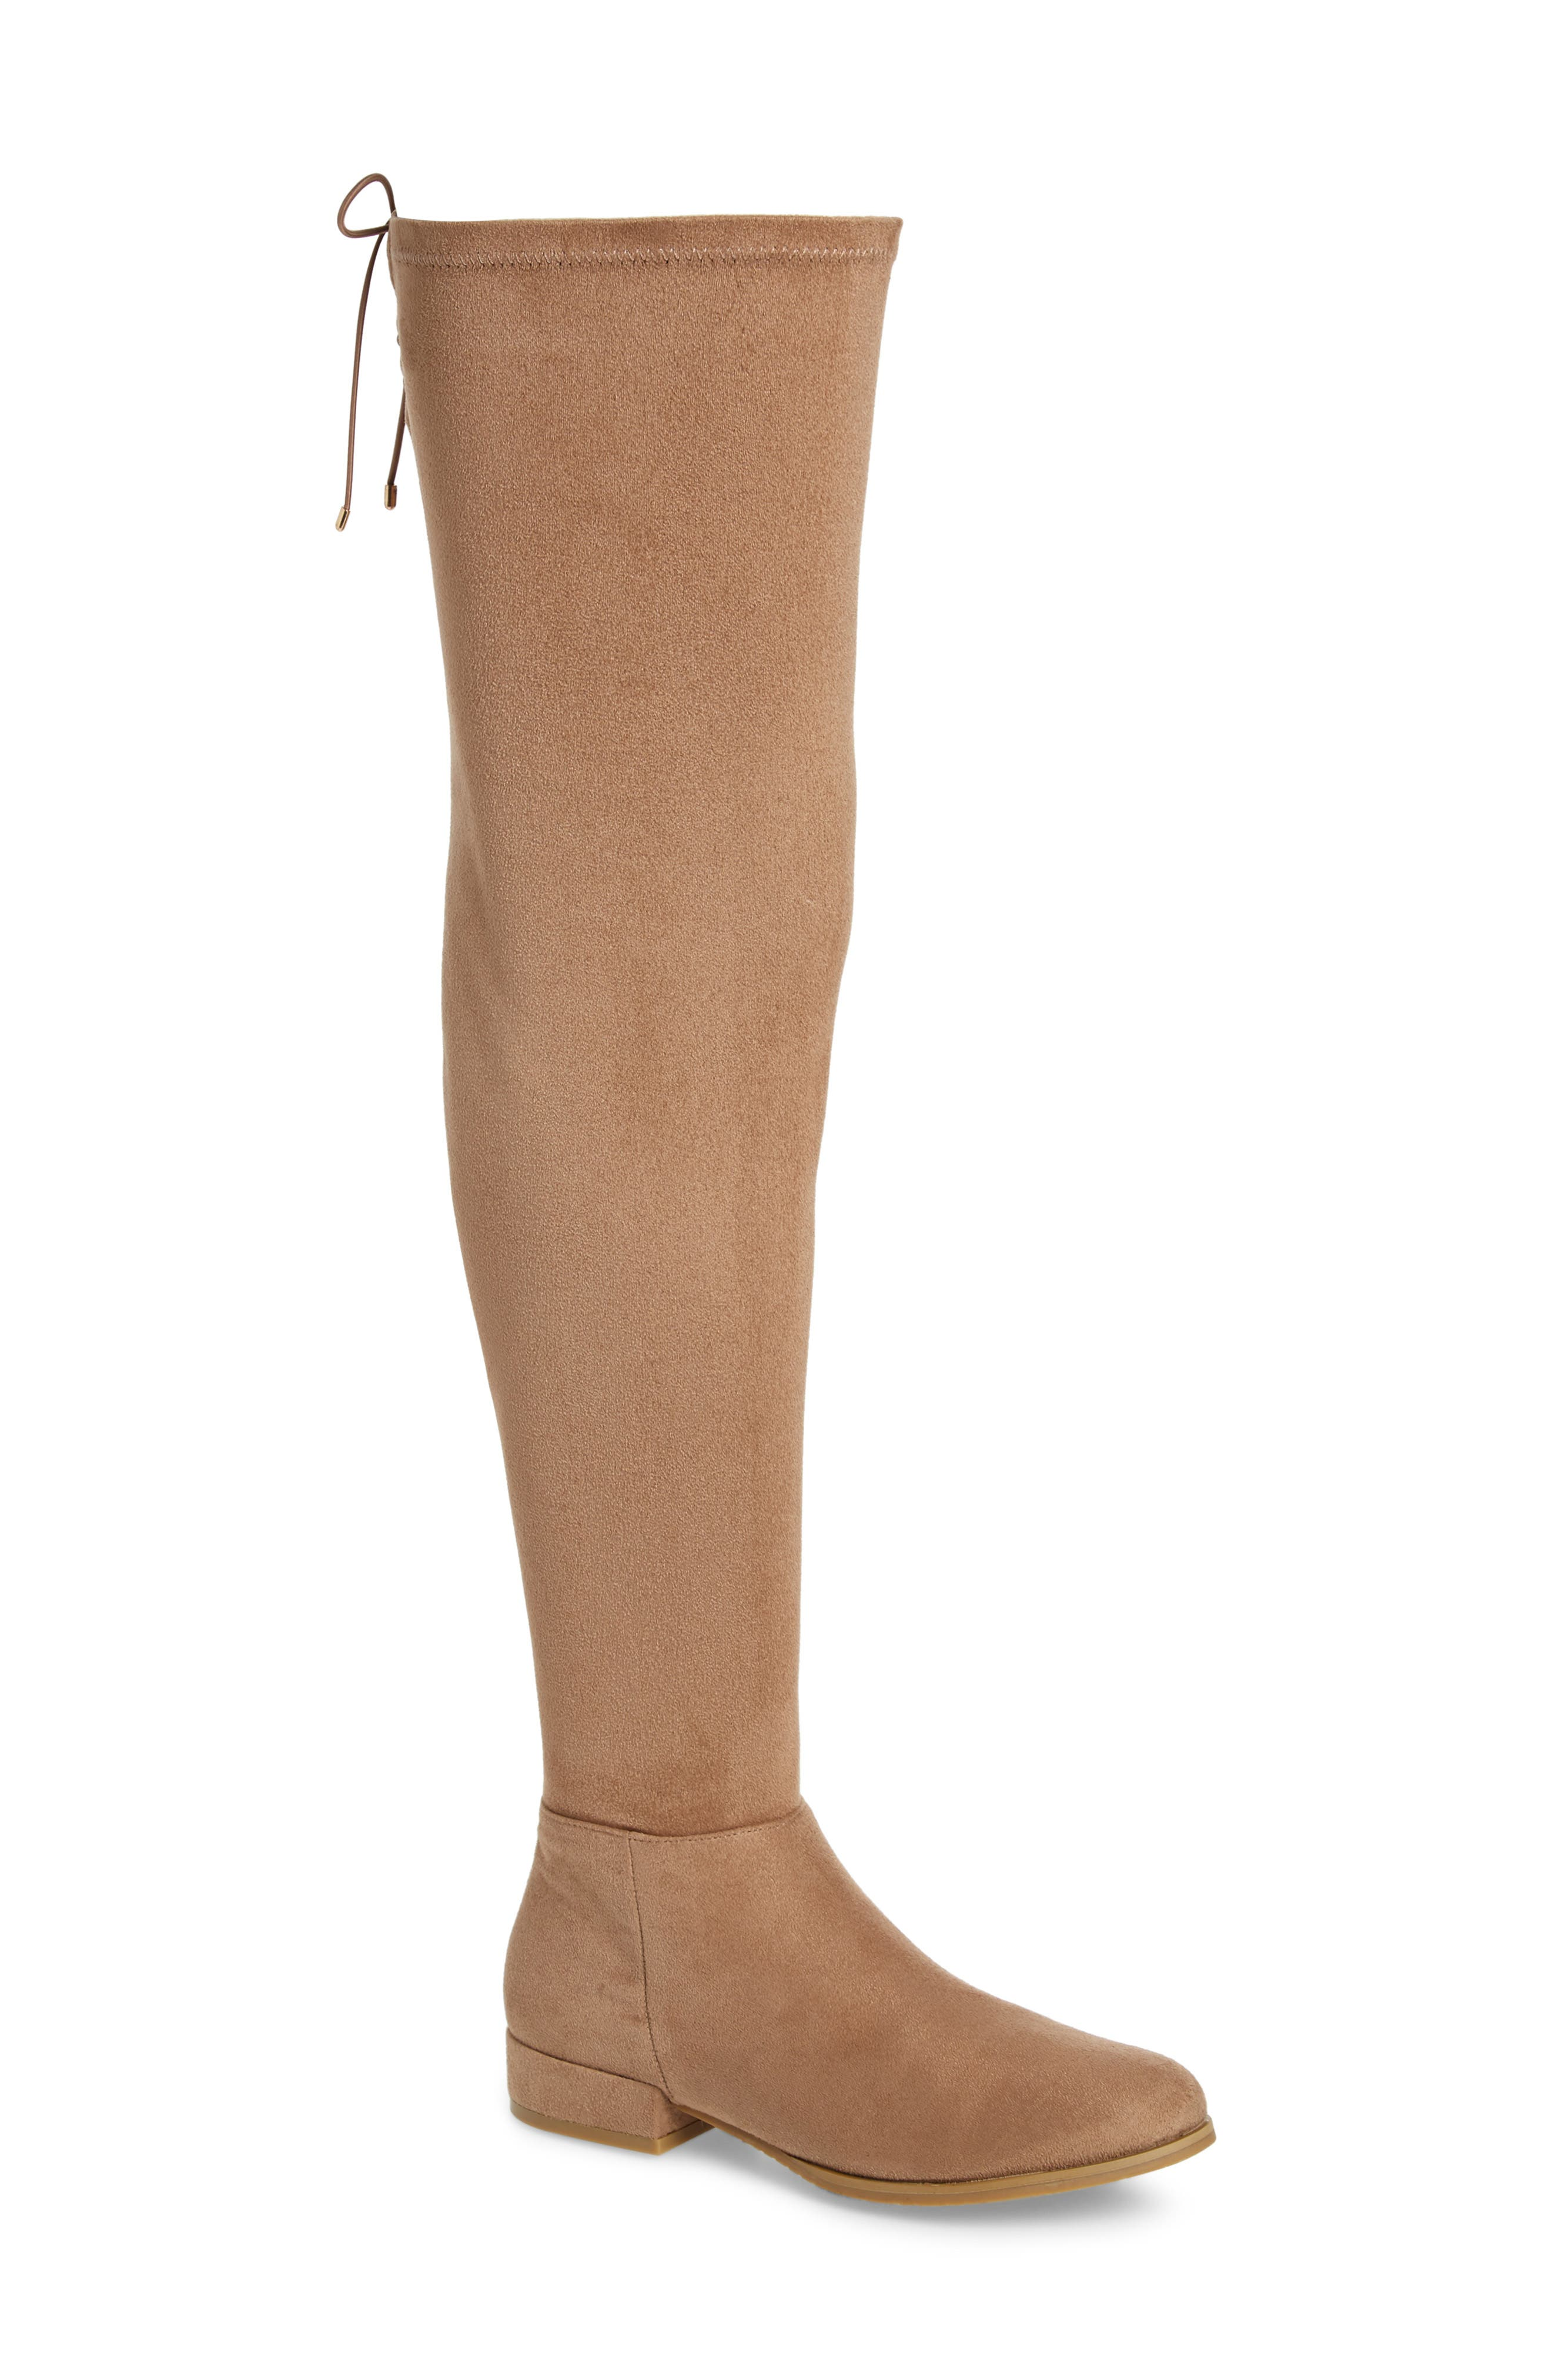 Chinese Laundry Richie Knee High Boot, Beige